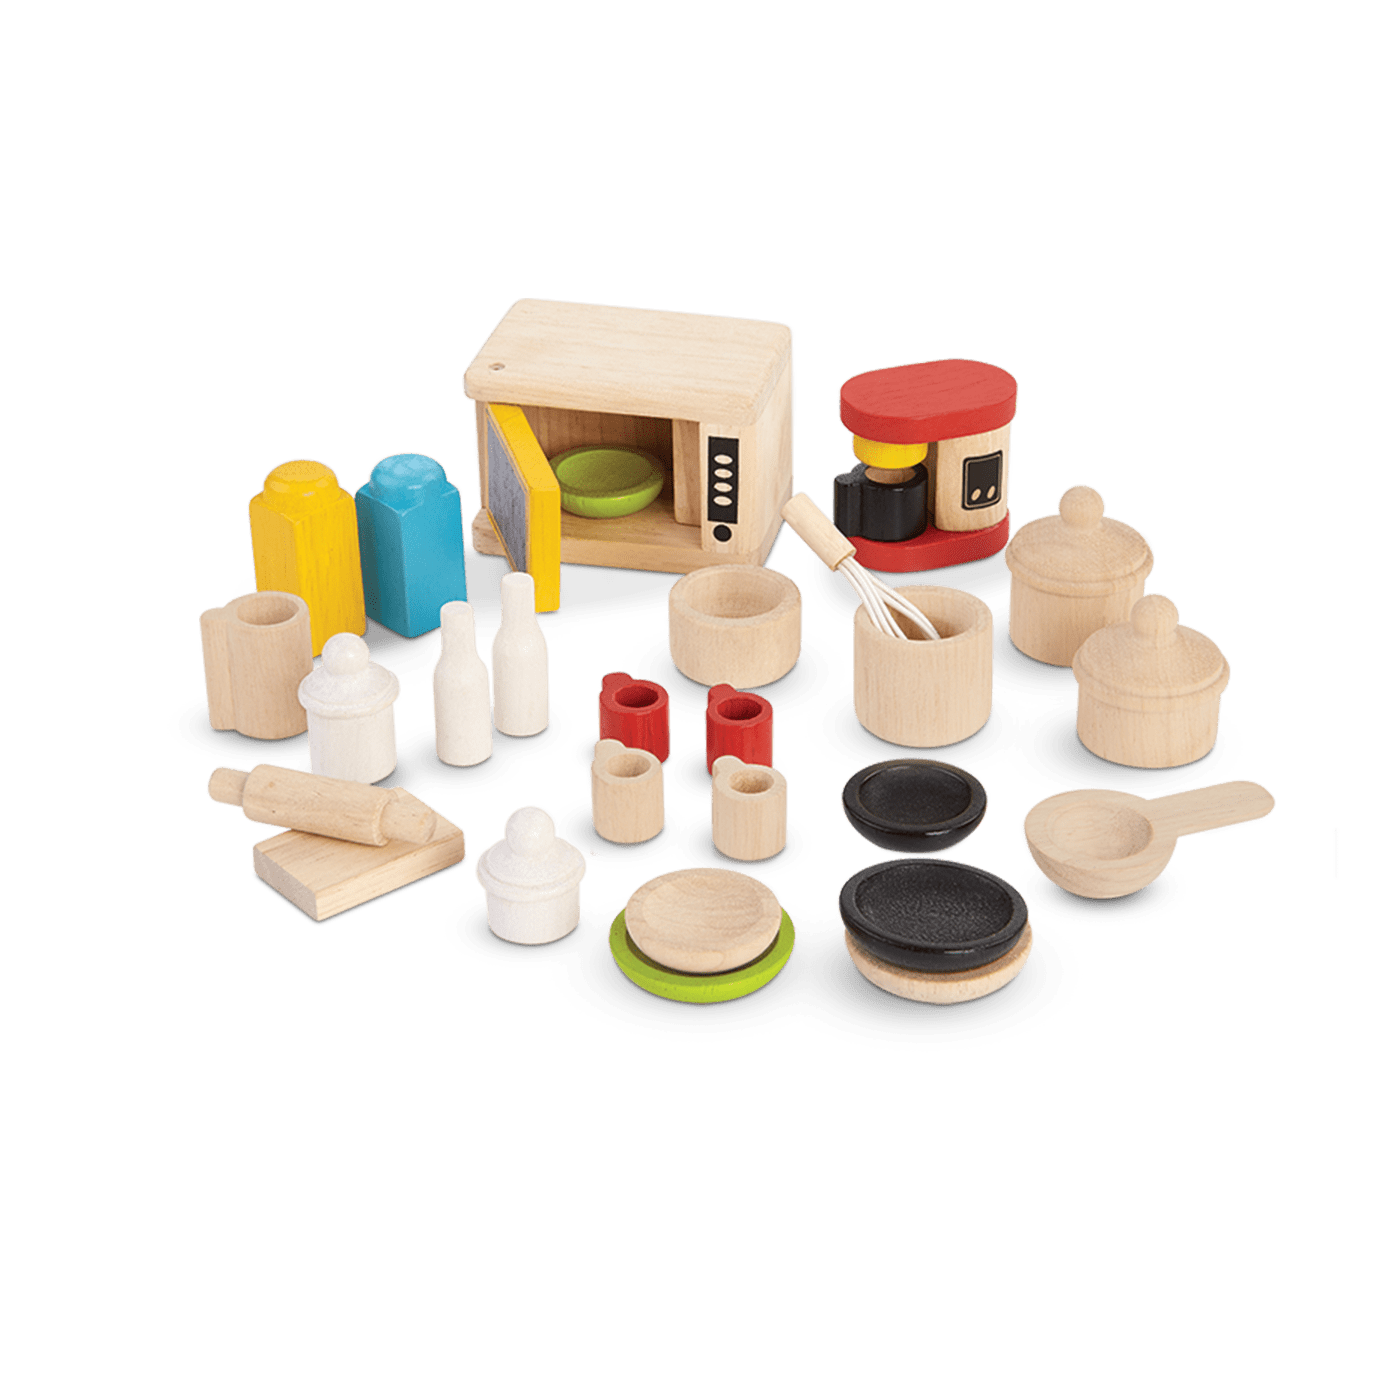 9406_PlanToys_ACC._FOR_KITCHEN_and_TABLEWARE_Pretend_Play_Imagination_Social_Language_and_Communications_Fine_Motor_3yrs_Wooden_toys_Education_toys_Safety_Toys_Non-toxic_0.png